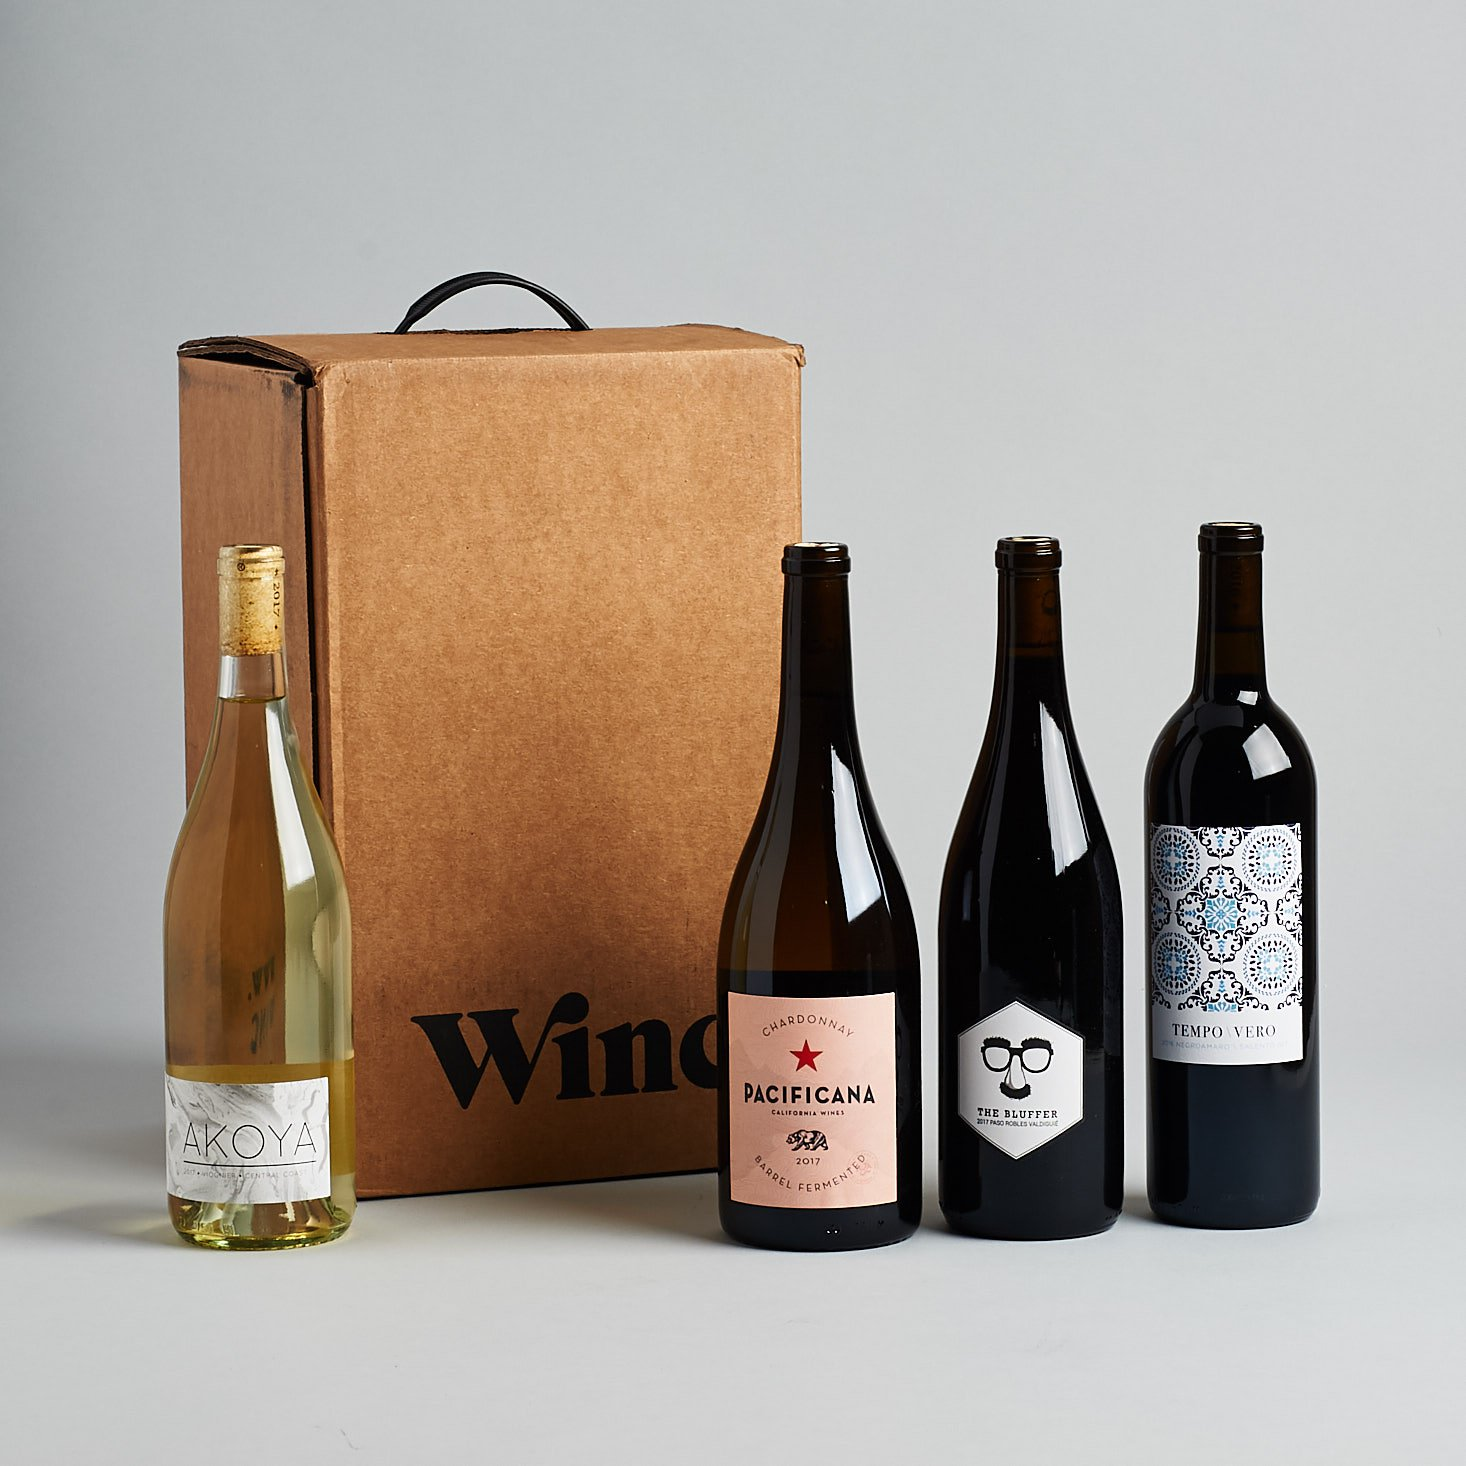 Best Wine: Winc